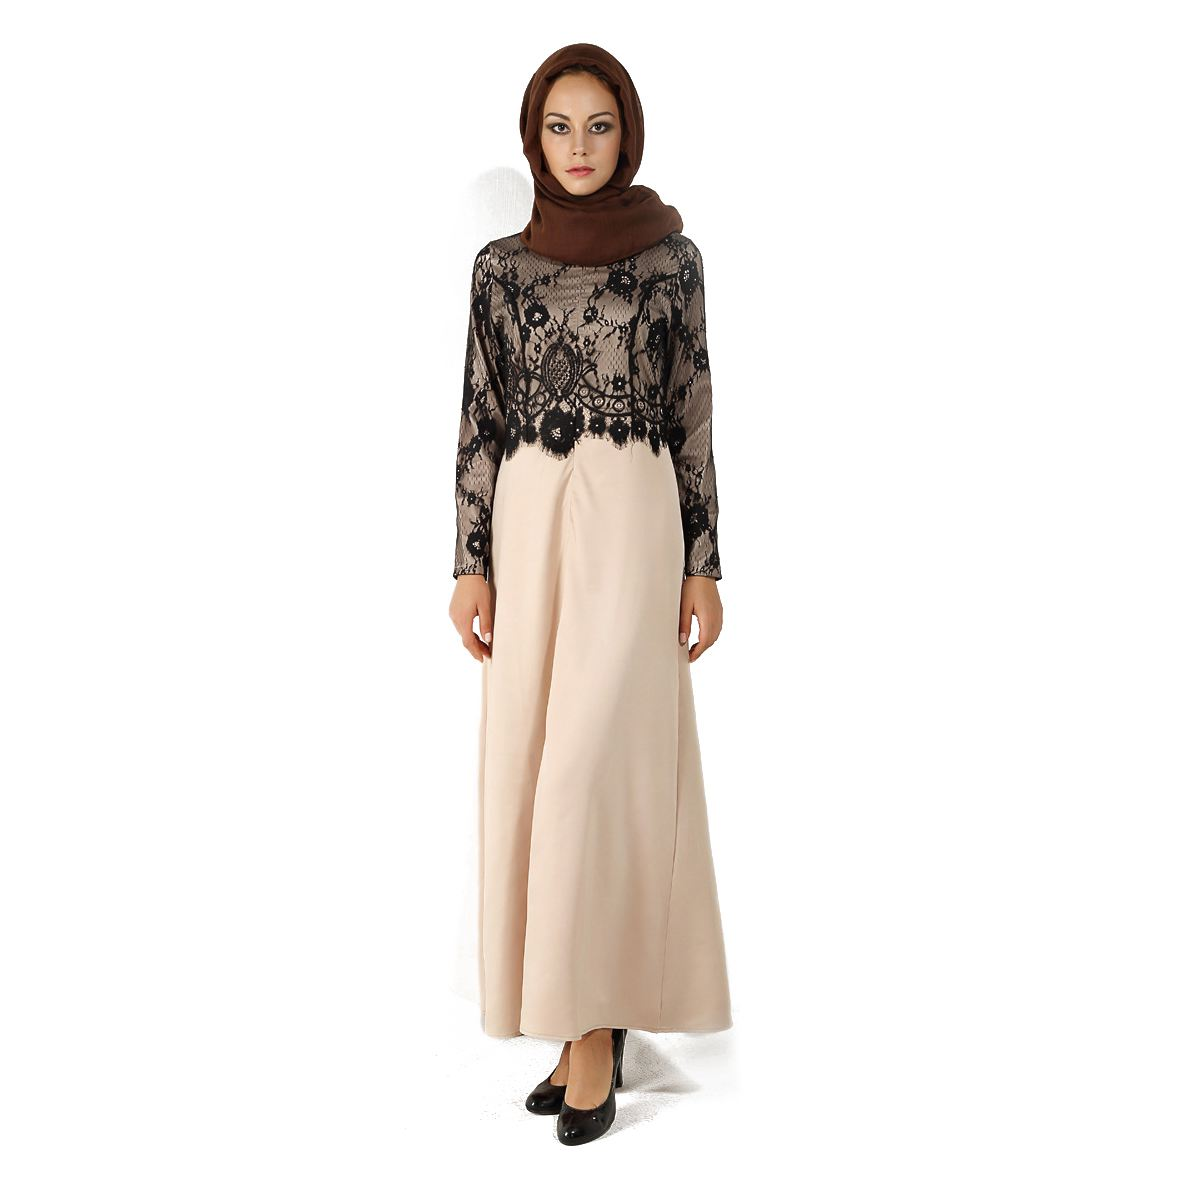 TFGS Womens New Spring Autumn Noble Muslim Dress Lace Kaftan Abaya Ladies Long Sleeve Elegant Islamic Maxi Dress